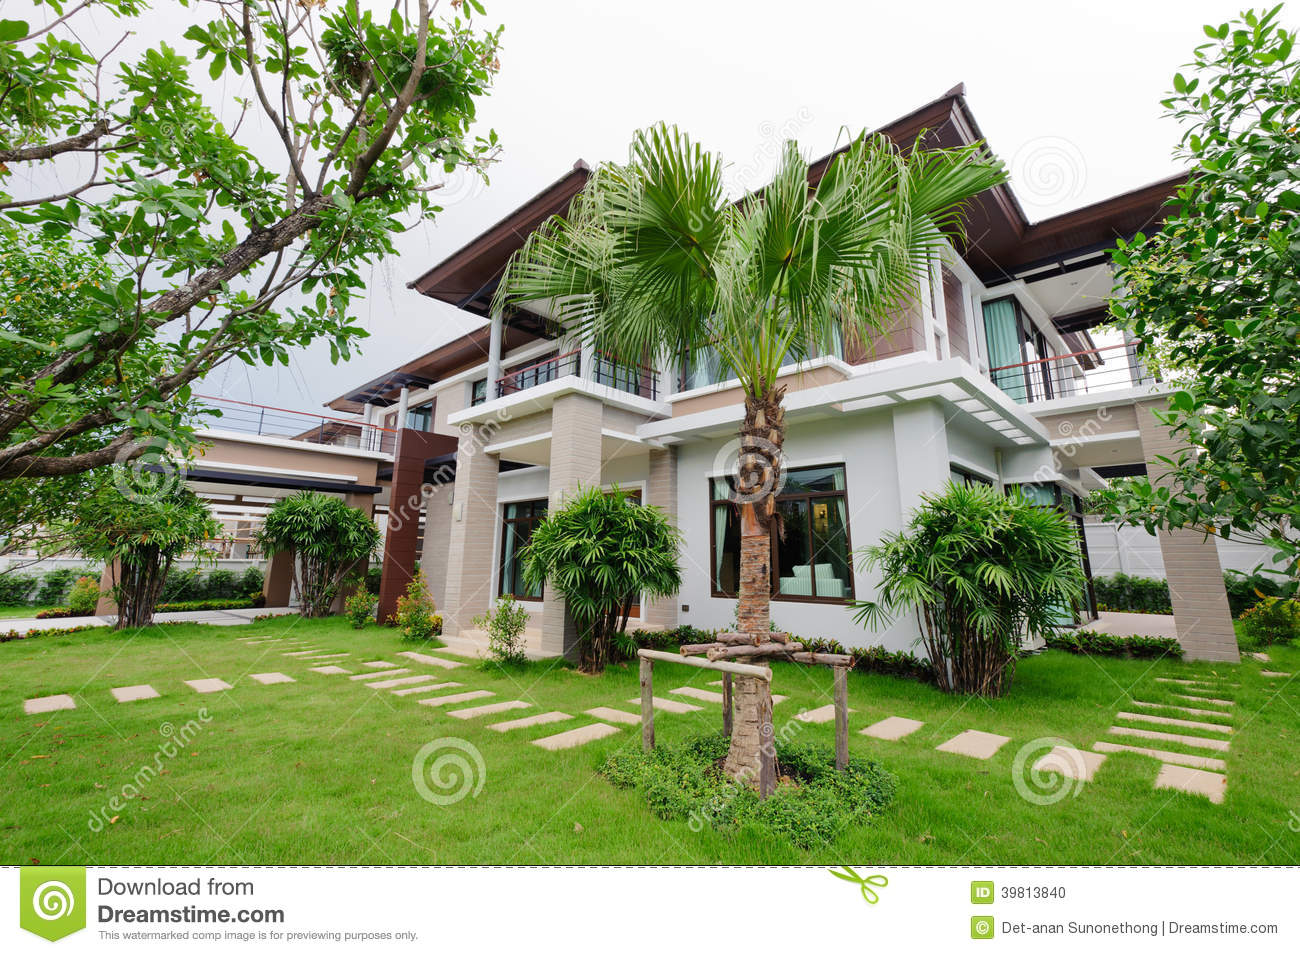 Modern house and garden stock photo image of architecture for Casa con jardin alquiler